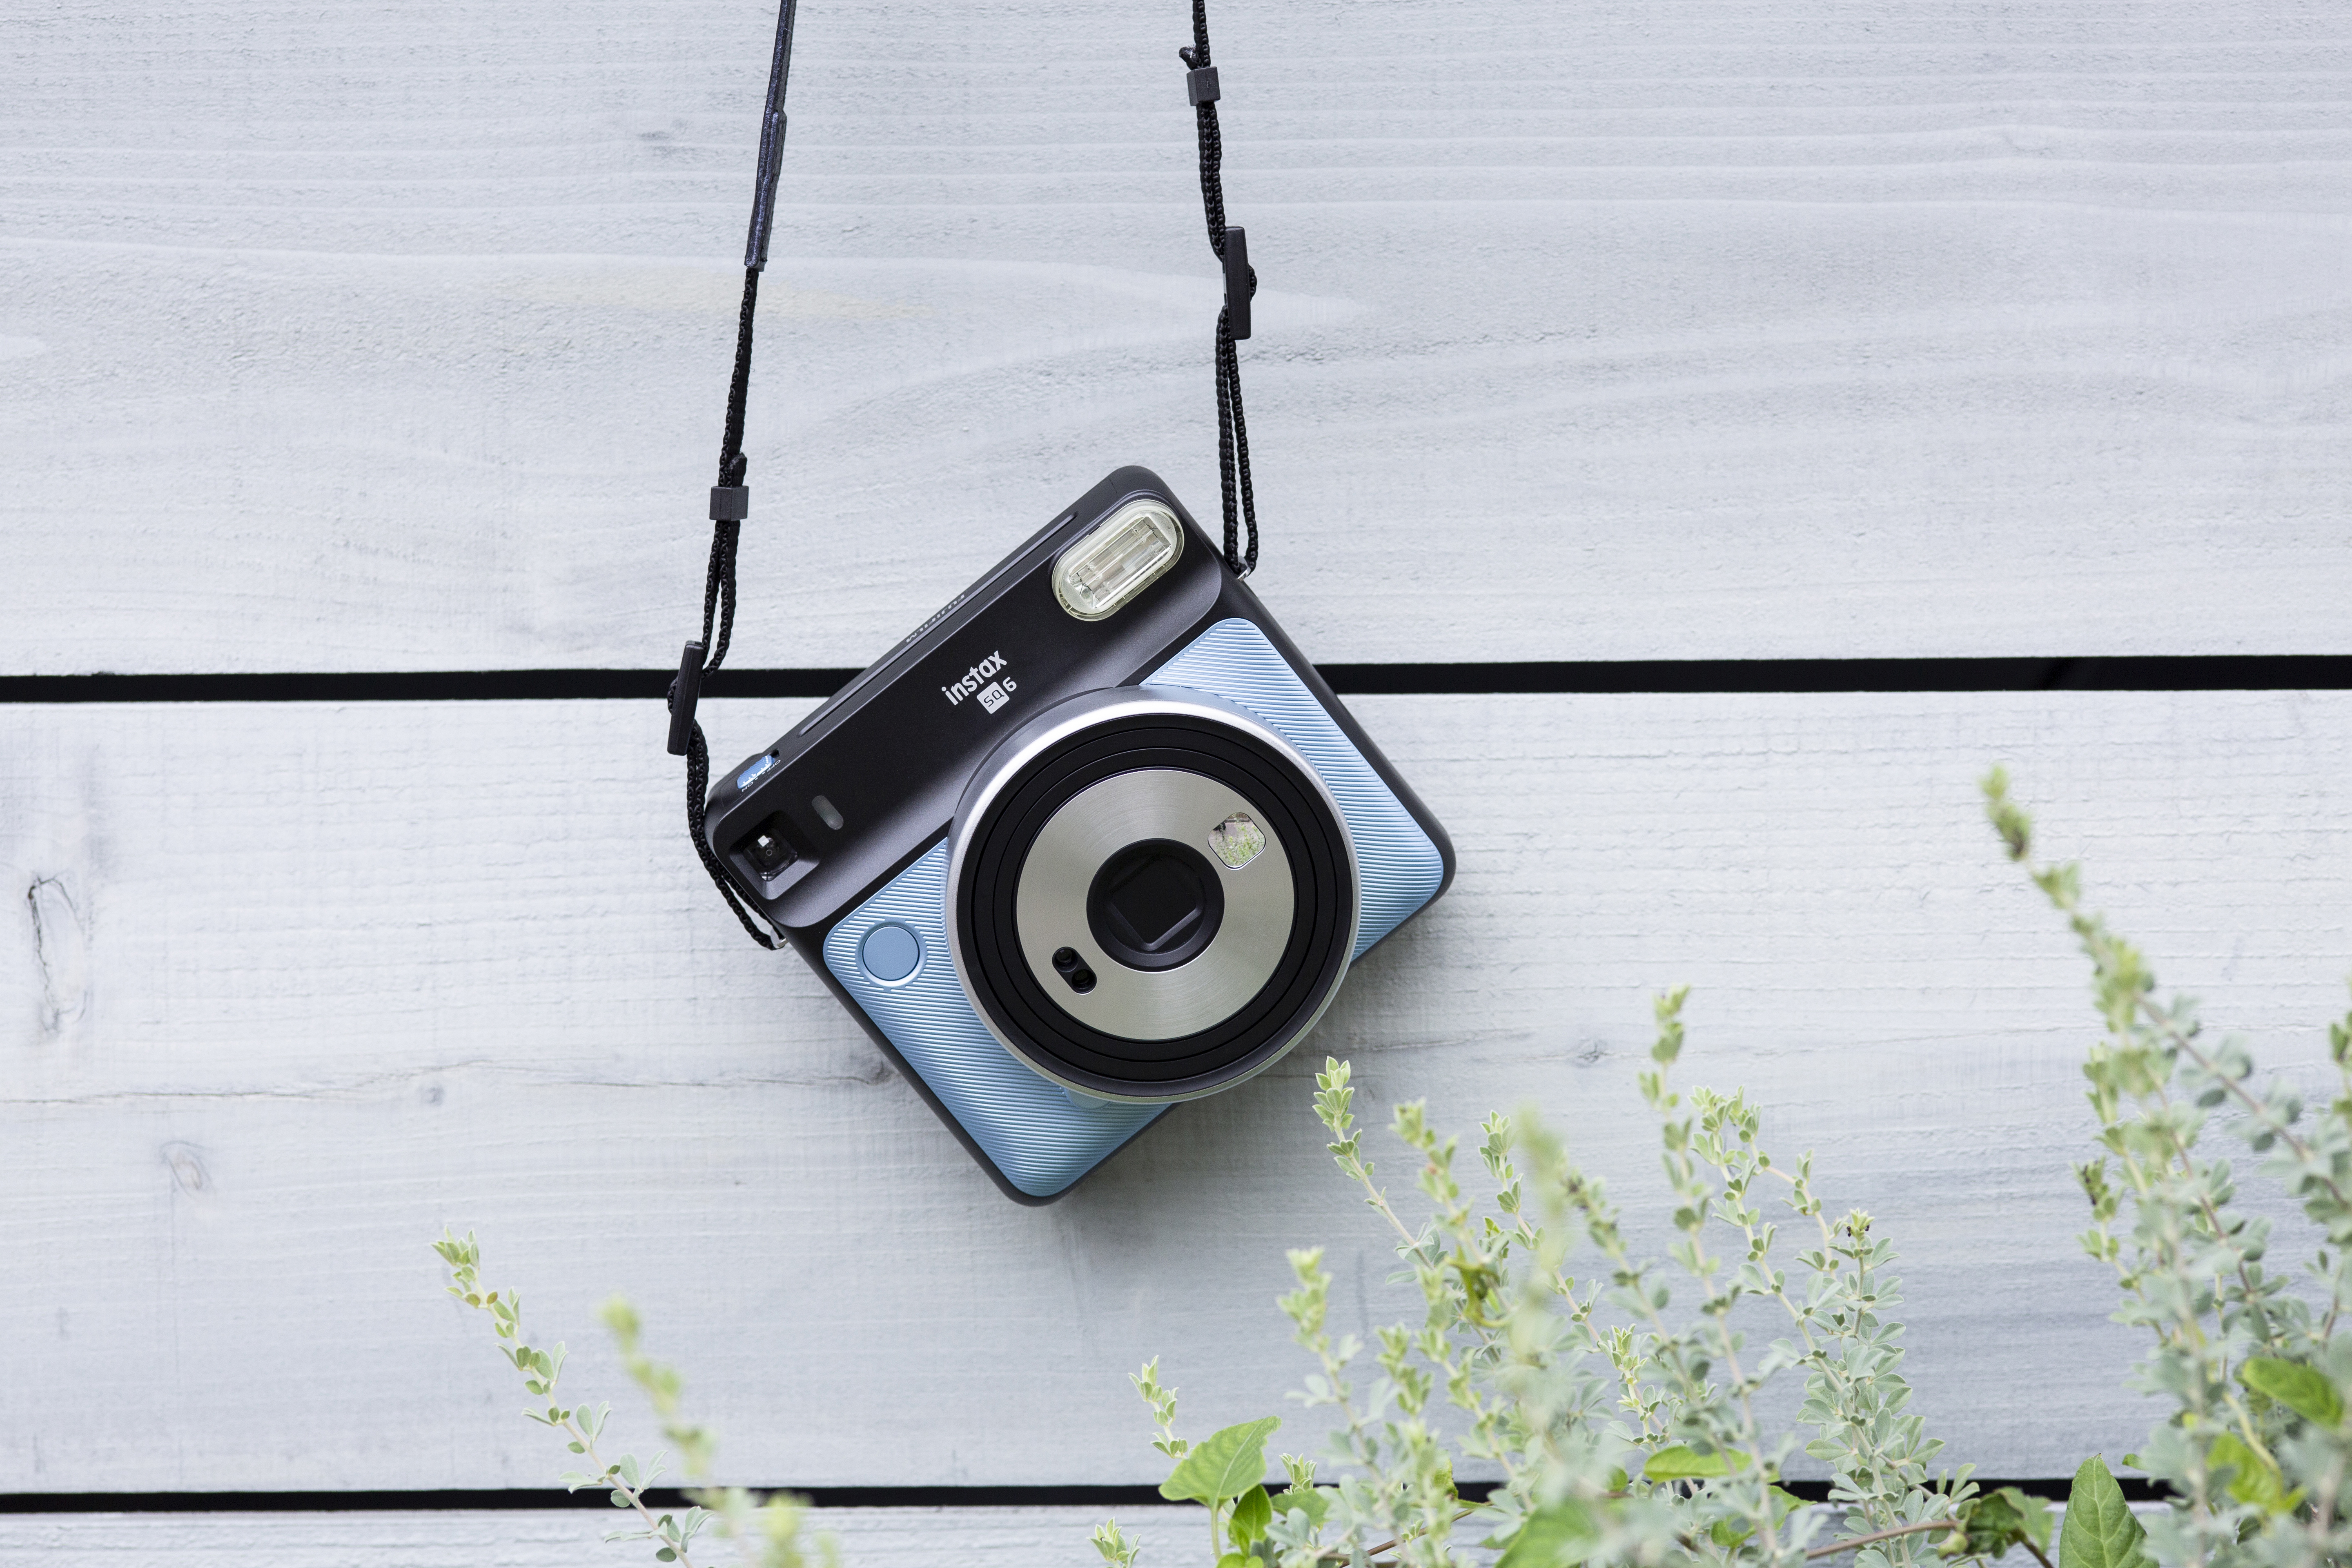 Instax-square-camera-teen.jpg?mtime=20181130081854#asset:103910